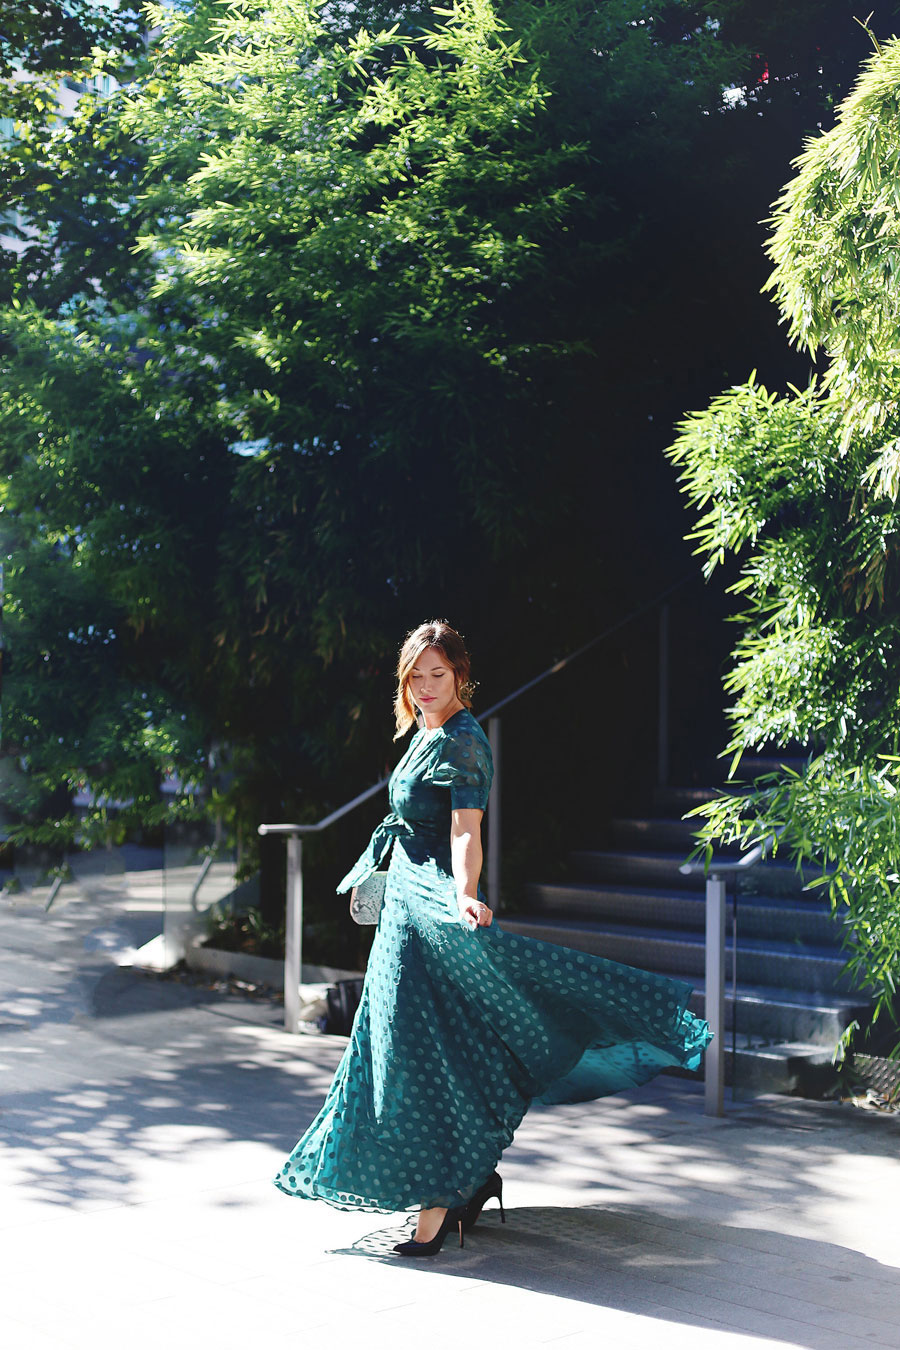 To Vogue or Bust shares what to wear to a black tie wedding in a green dotted Revole Tularosa dress, Ted Baker pink clutch, Leah Alexandra rings and Swarovski rings, and a low chignon.